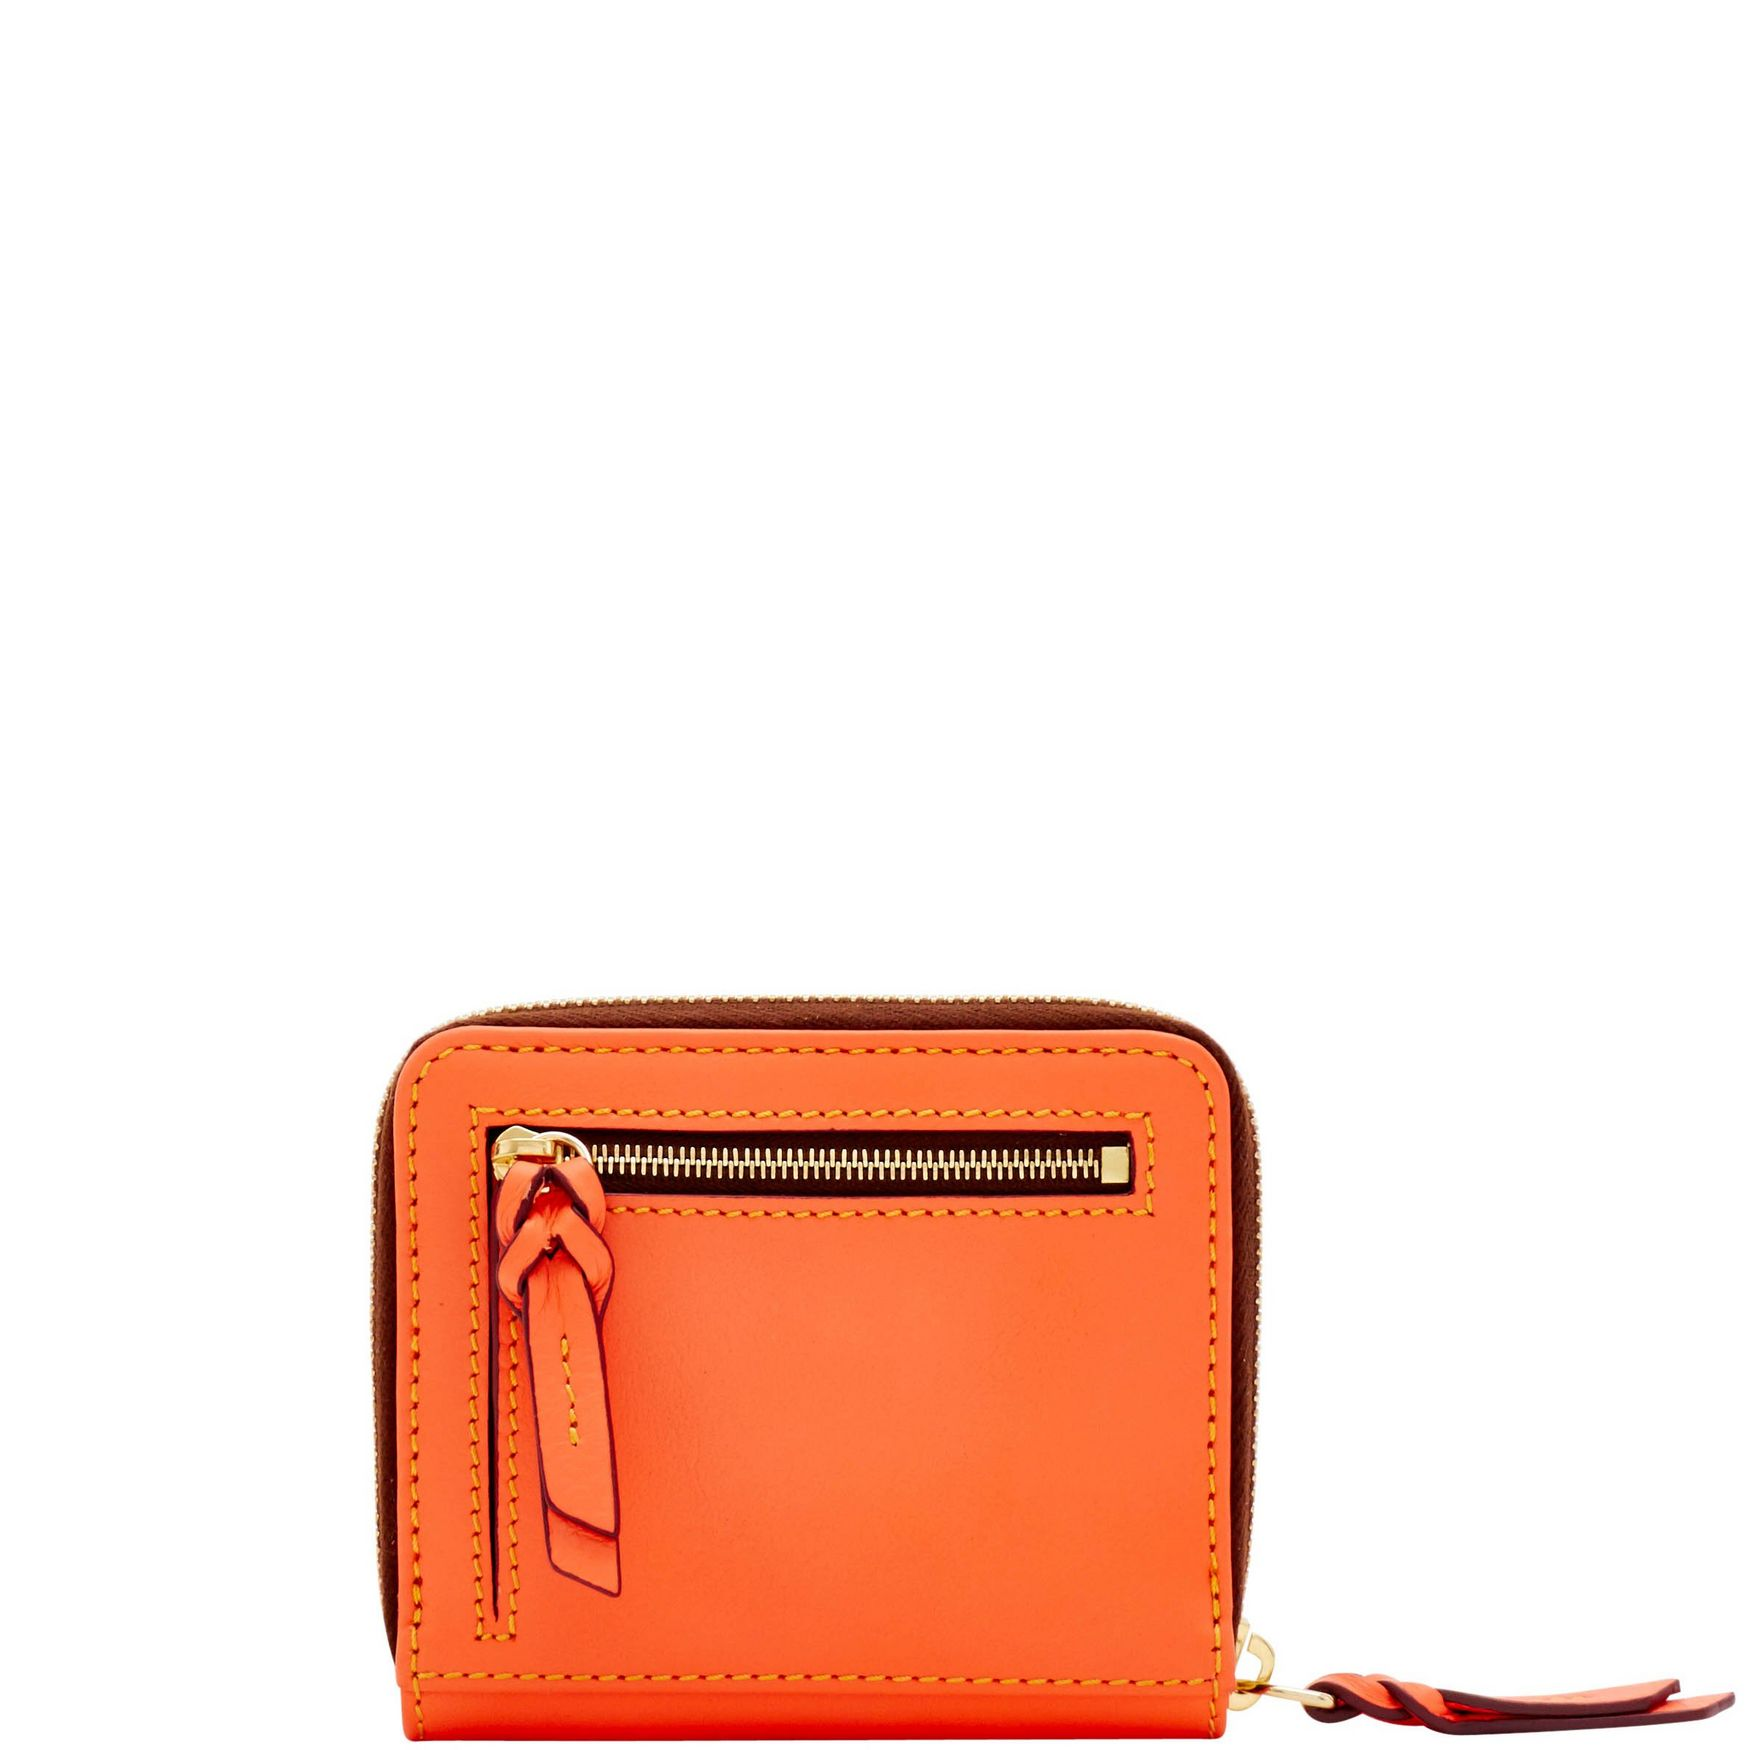 Dooney-amp-Bourke-Florentine-Small-Zip-Around-Wallet thumbnail 26